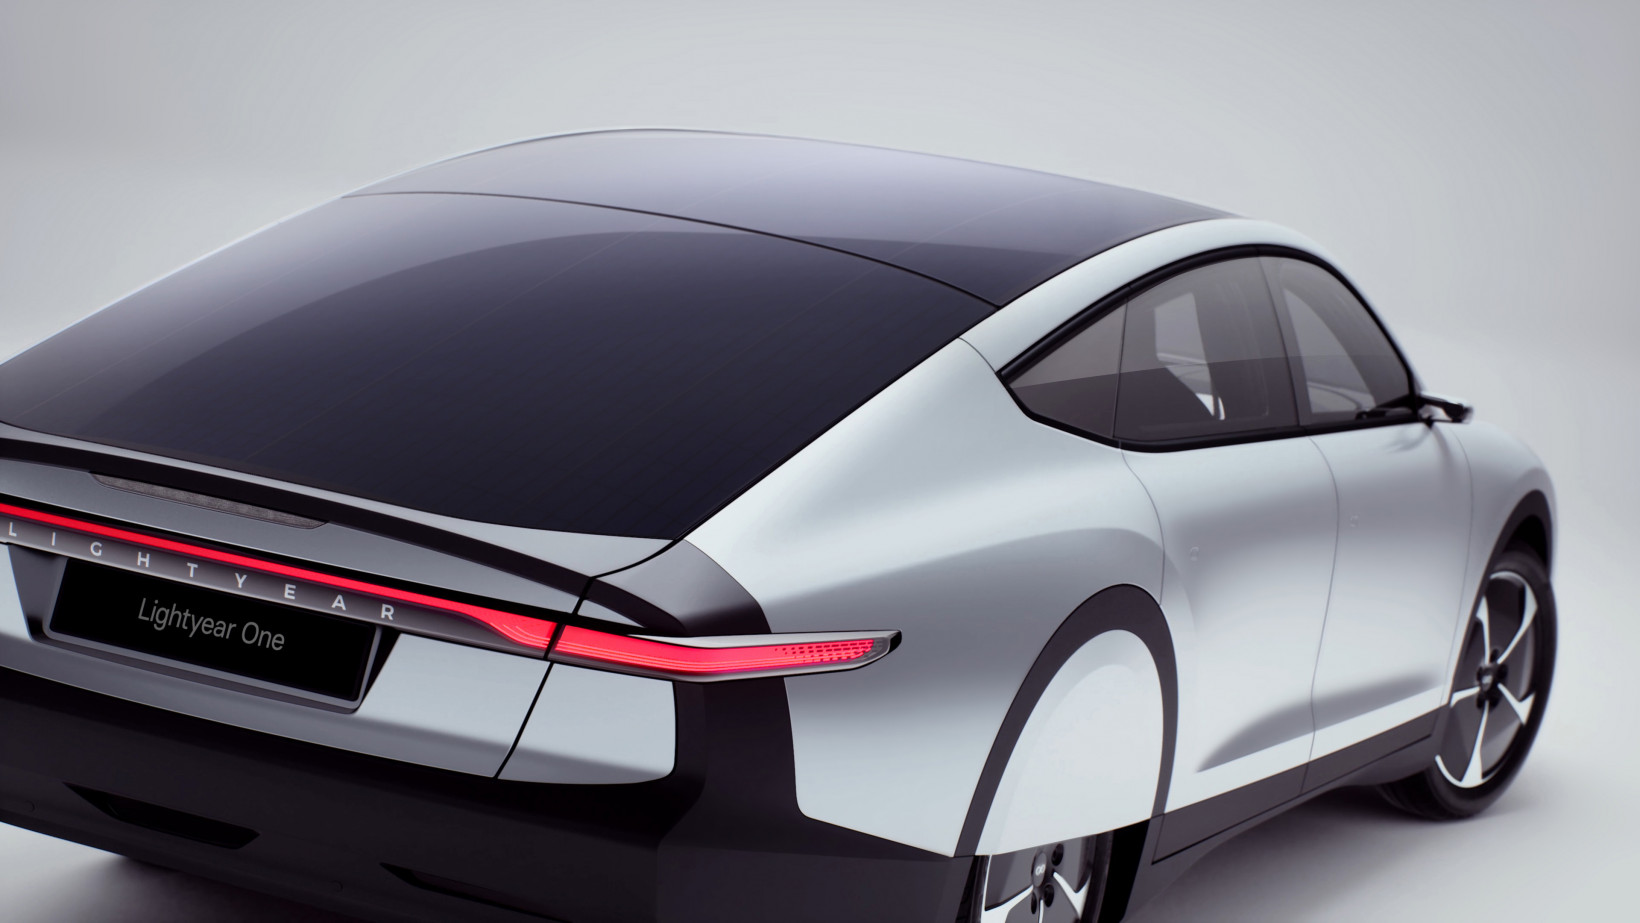 The Lightyear One has five square meters of solar cells across its roof and hood, so it can draw enough power per hour for 12km range